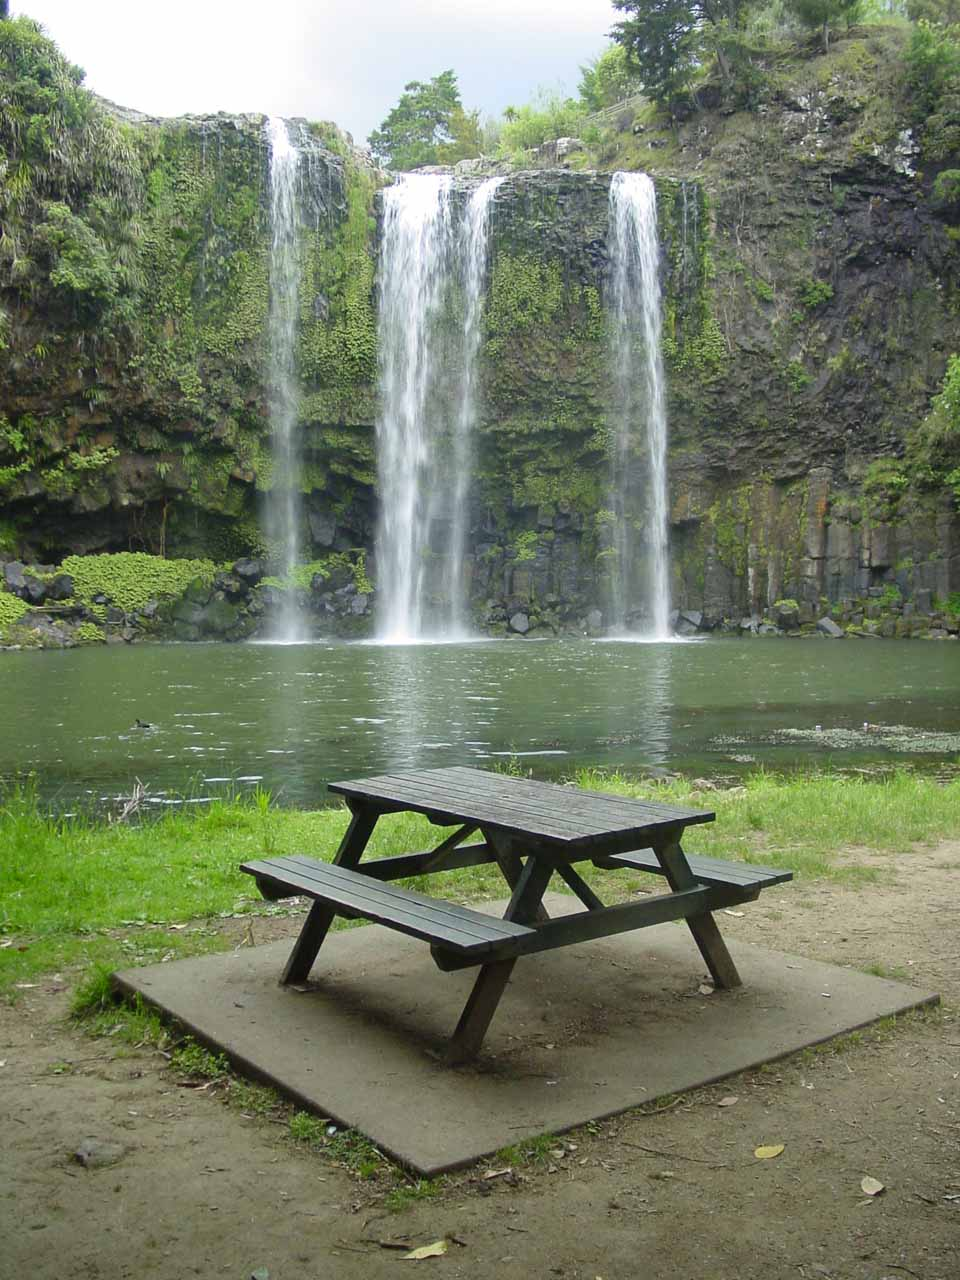 Whangarei Falls and picnic table